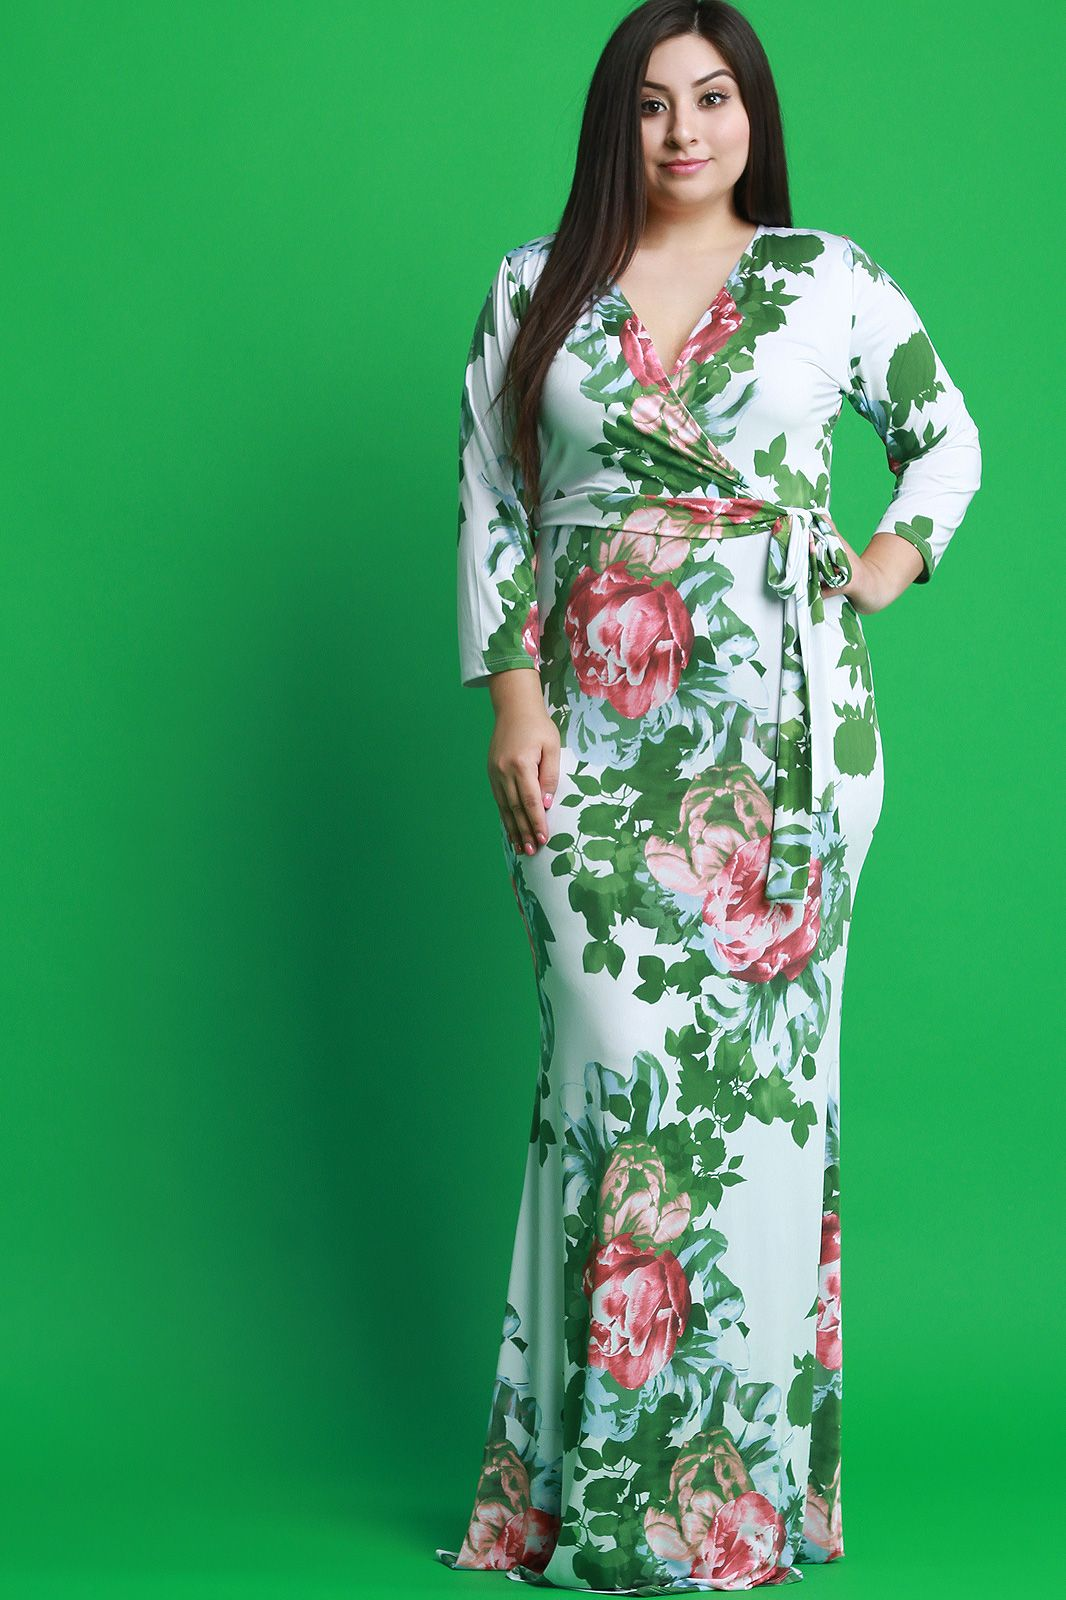 Free Sh Easy Returns Shop This Dress Features A Stretchy Knit With Floral Pattern Print Surplice V Ne Maxi Dress Long Sleeve Maxi Dress Maxi Dress Cocktail [ 1600 x 1066 Pixel ]